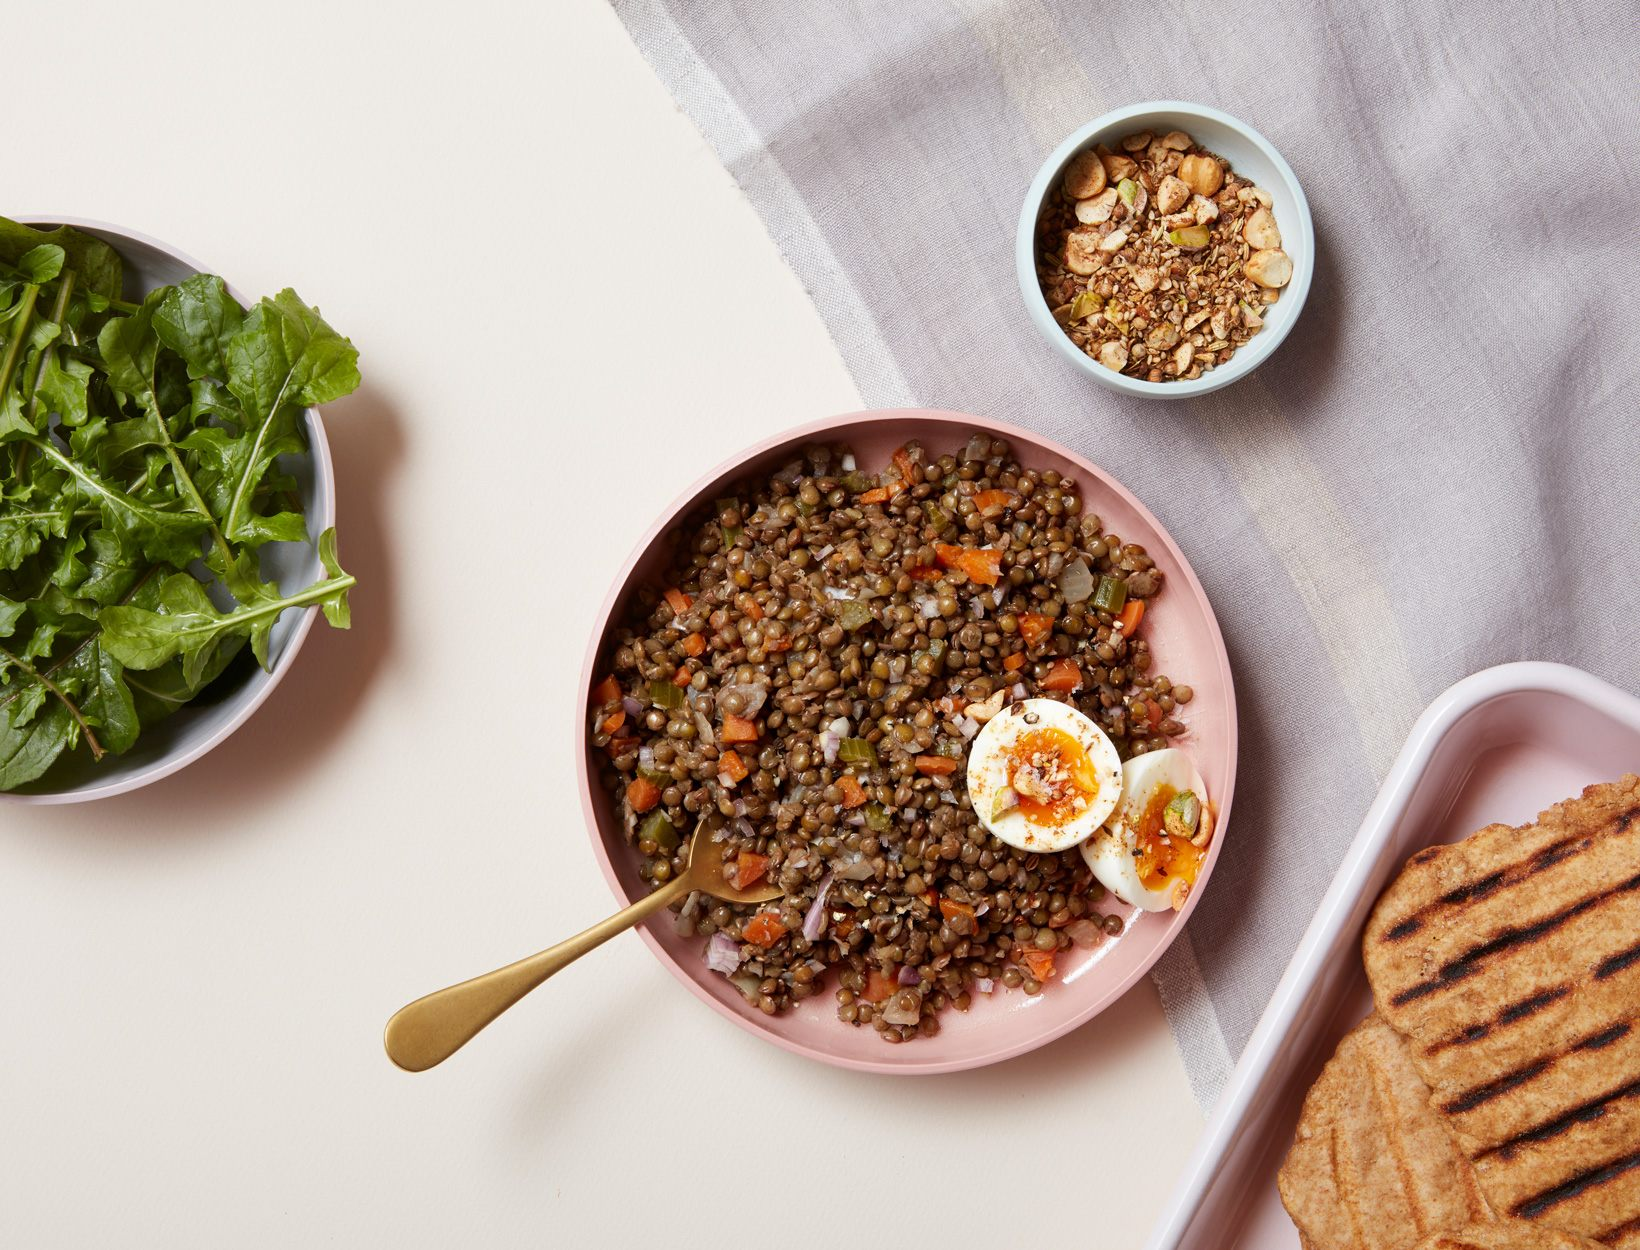 Make the Dukkah Spiced French Lentils with Soft Eggs and Arugula.